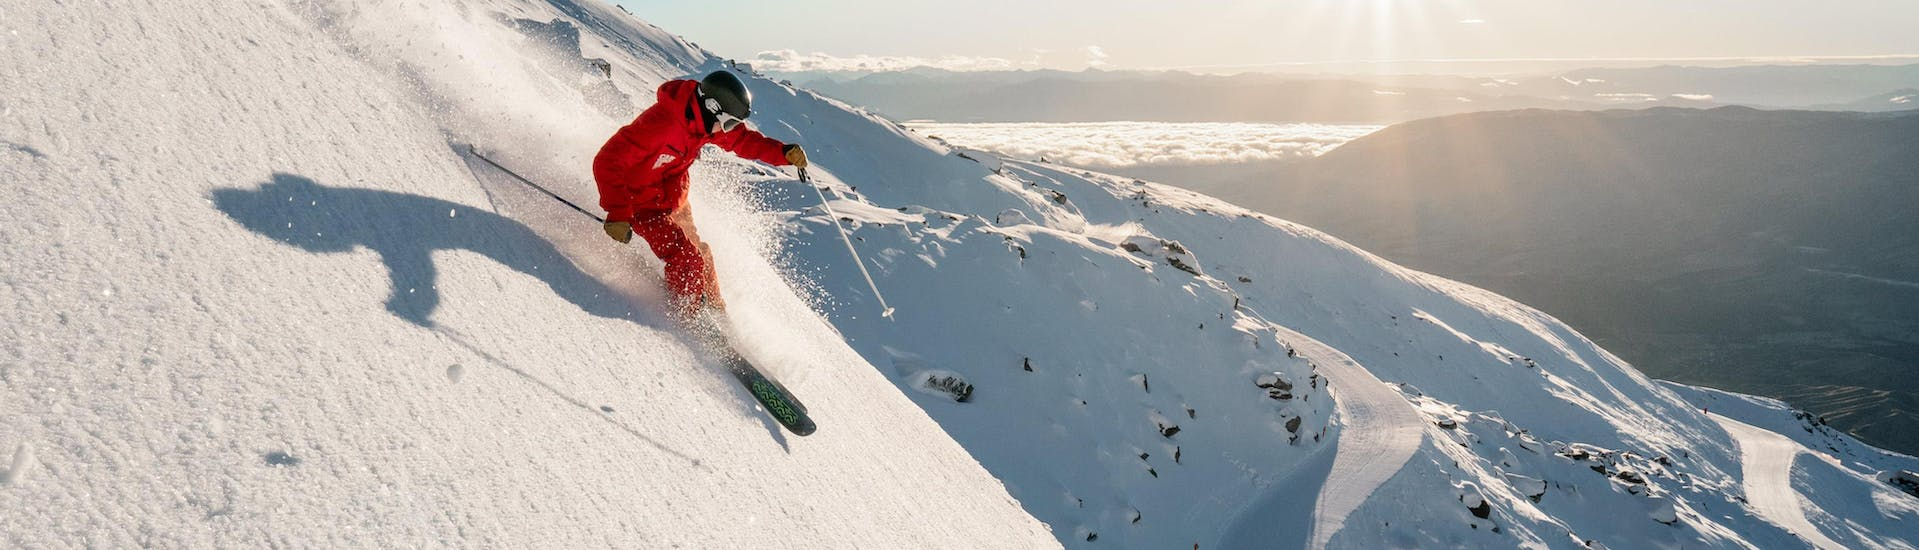 Private Ski Lessons for Adults - With Transfer